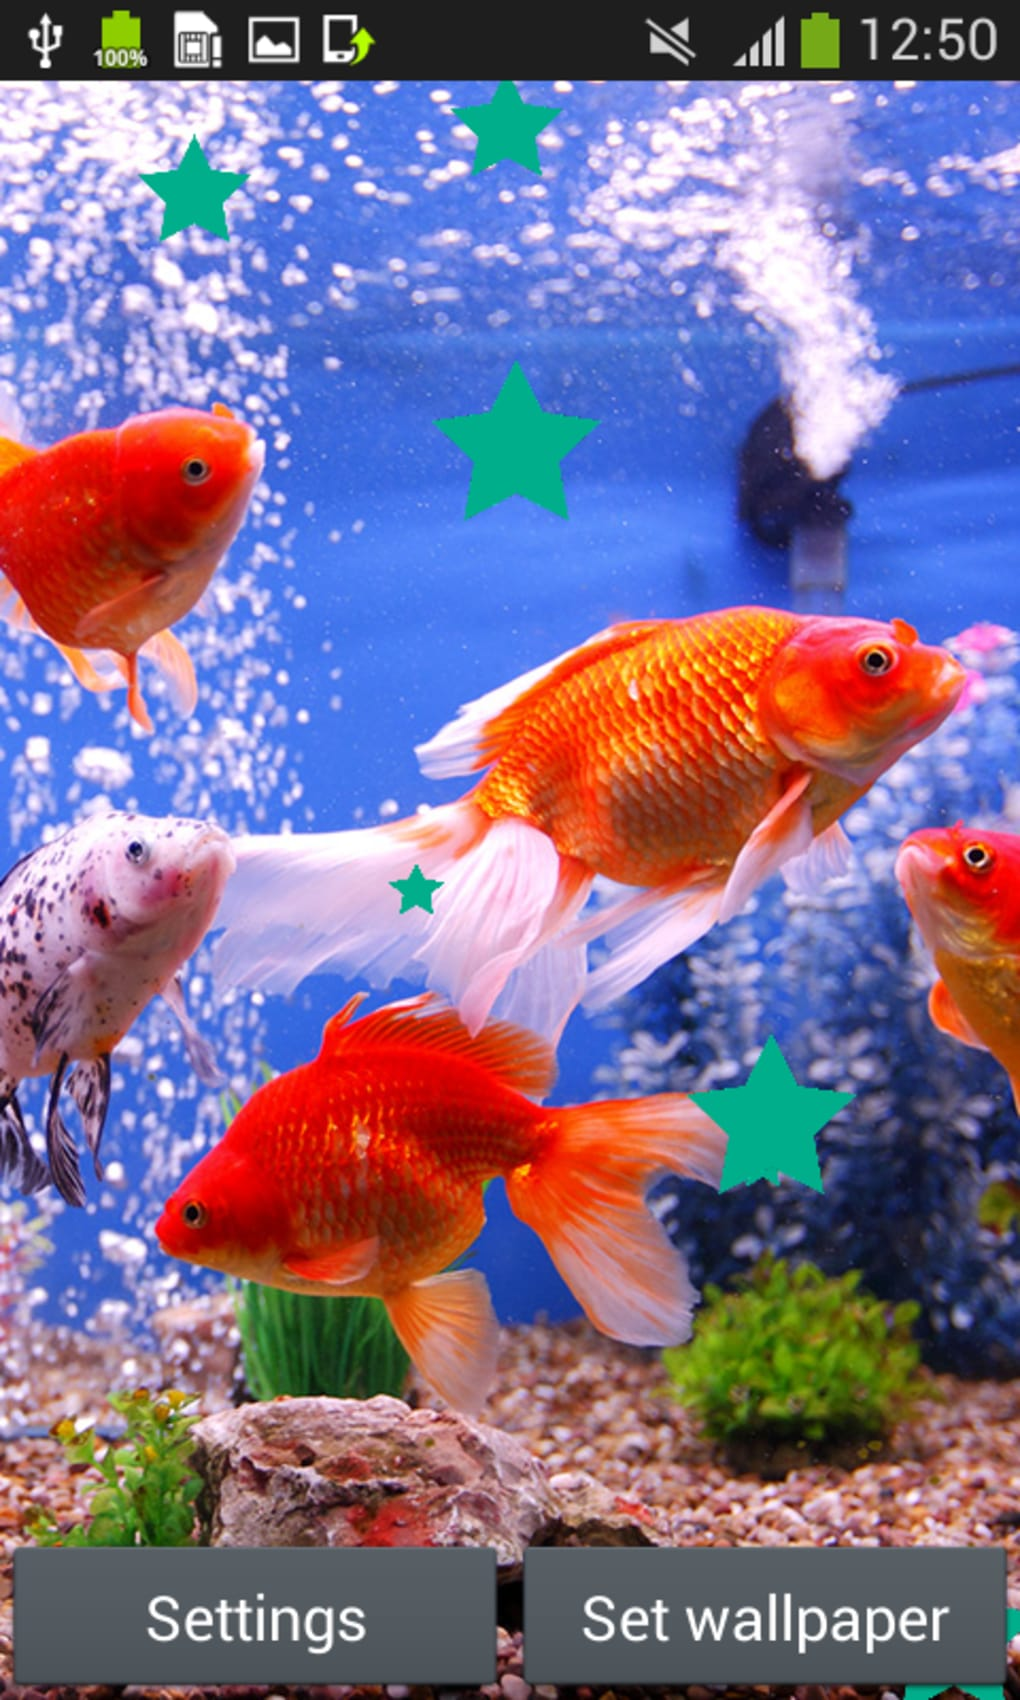 Aquarium Live Wallpapers for Android - Download